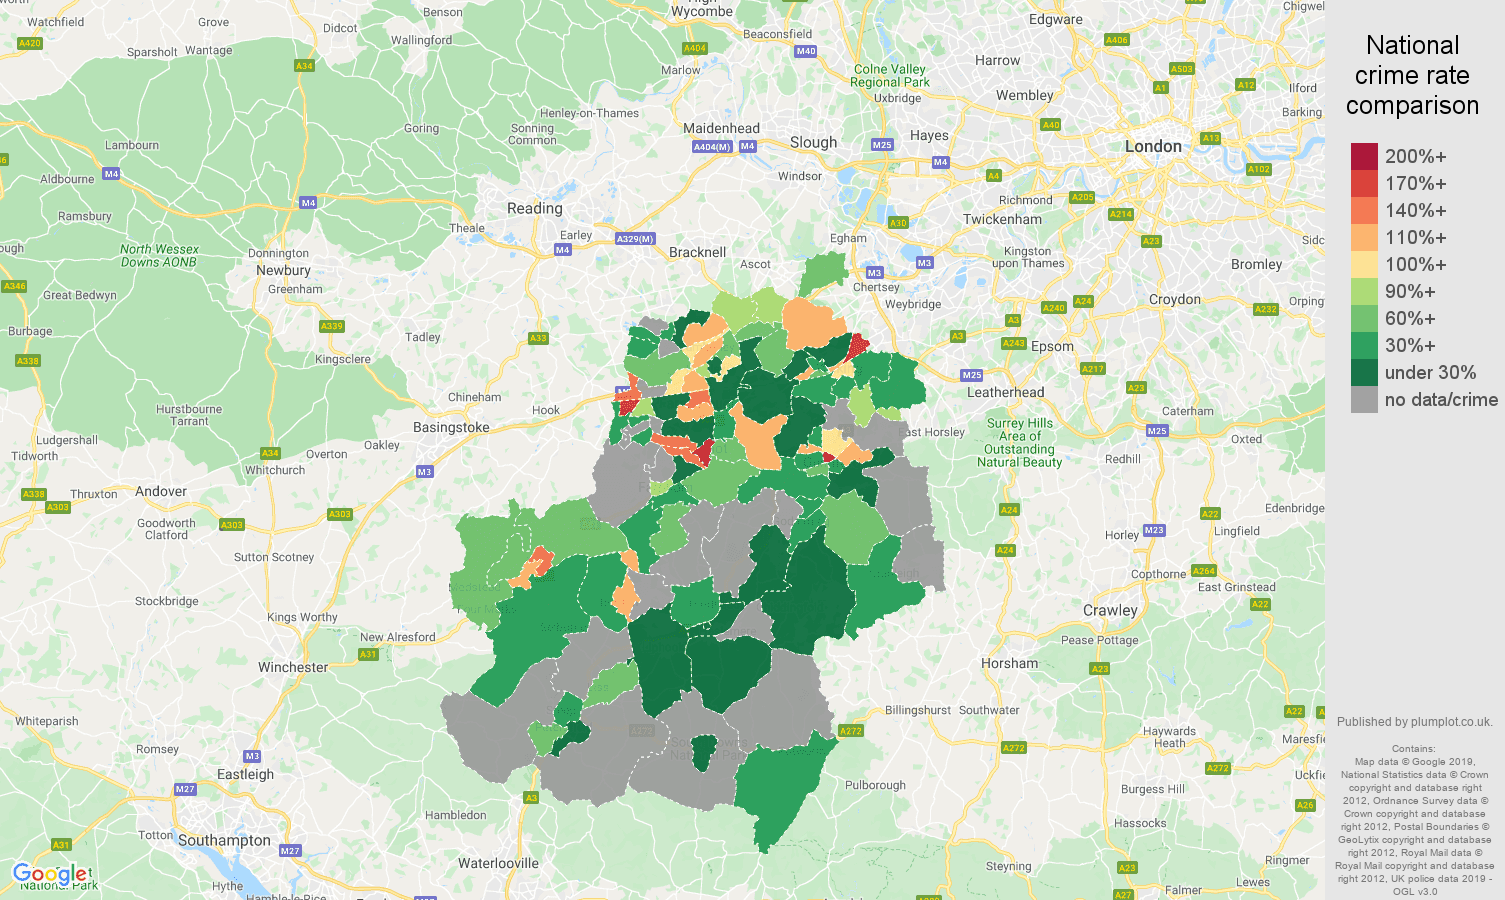 Guildford possession of weapons crime rate comparison map